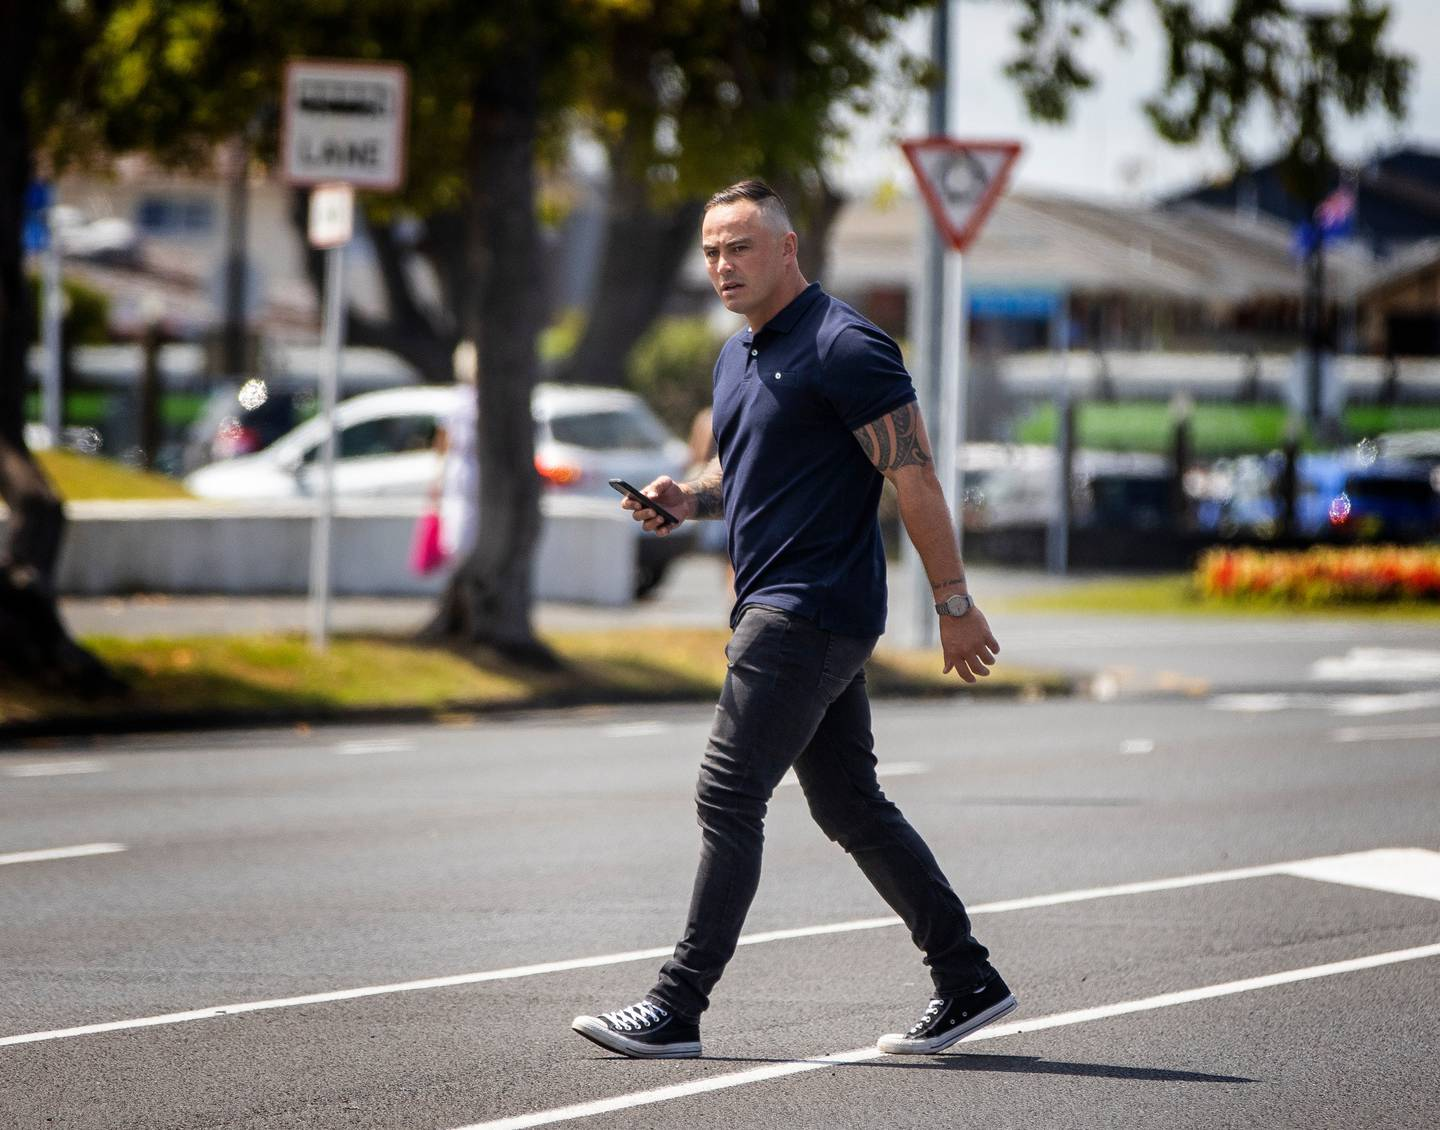 Zac Guildford walks to the Hamilton District Court in January this year to be sentenced on a charge of assaulting a female. He lost an appeal to keep his name secret. Photo / Mike Scott